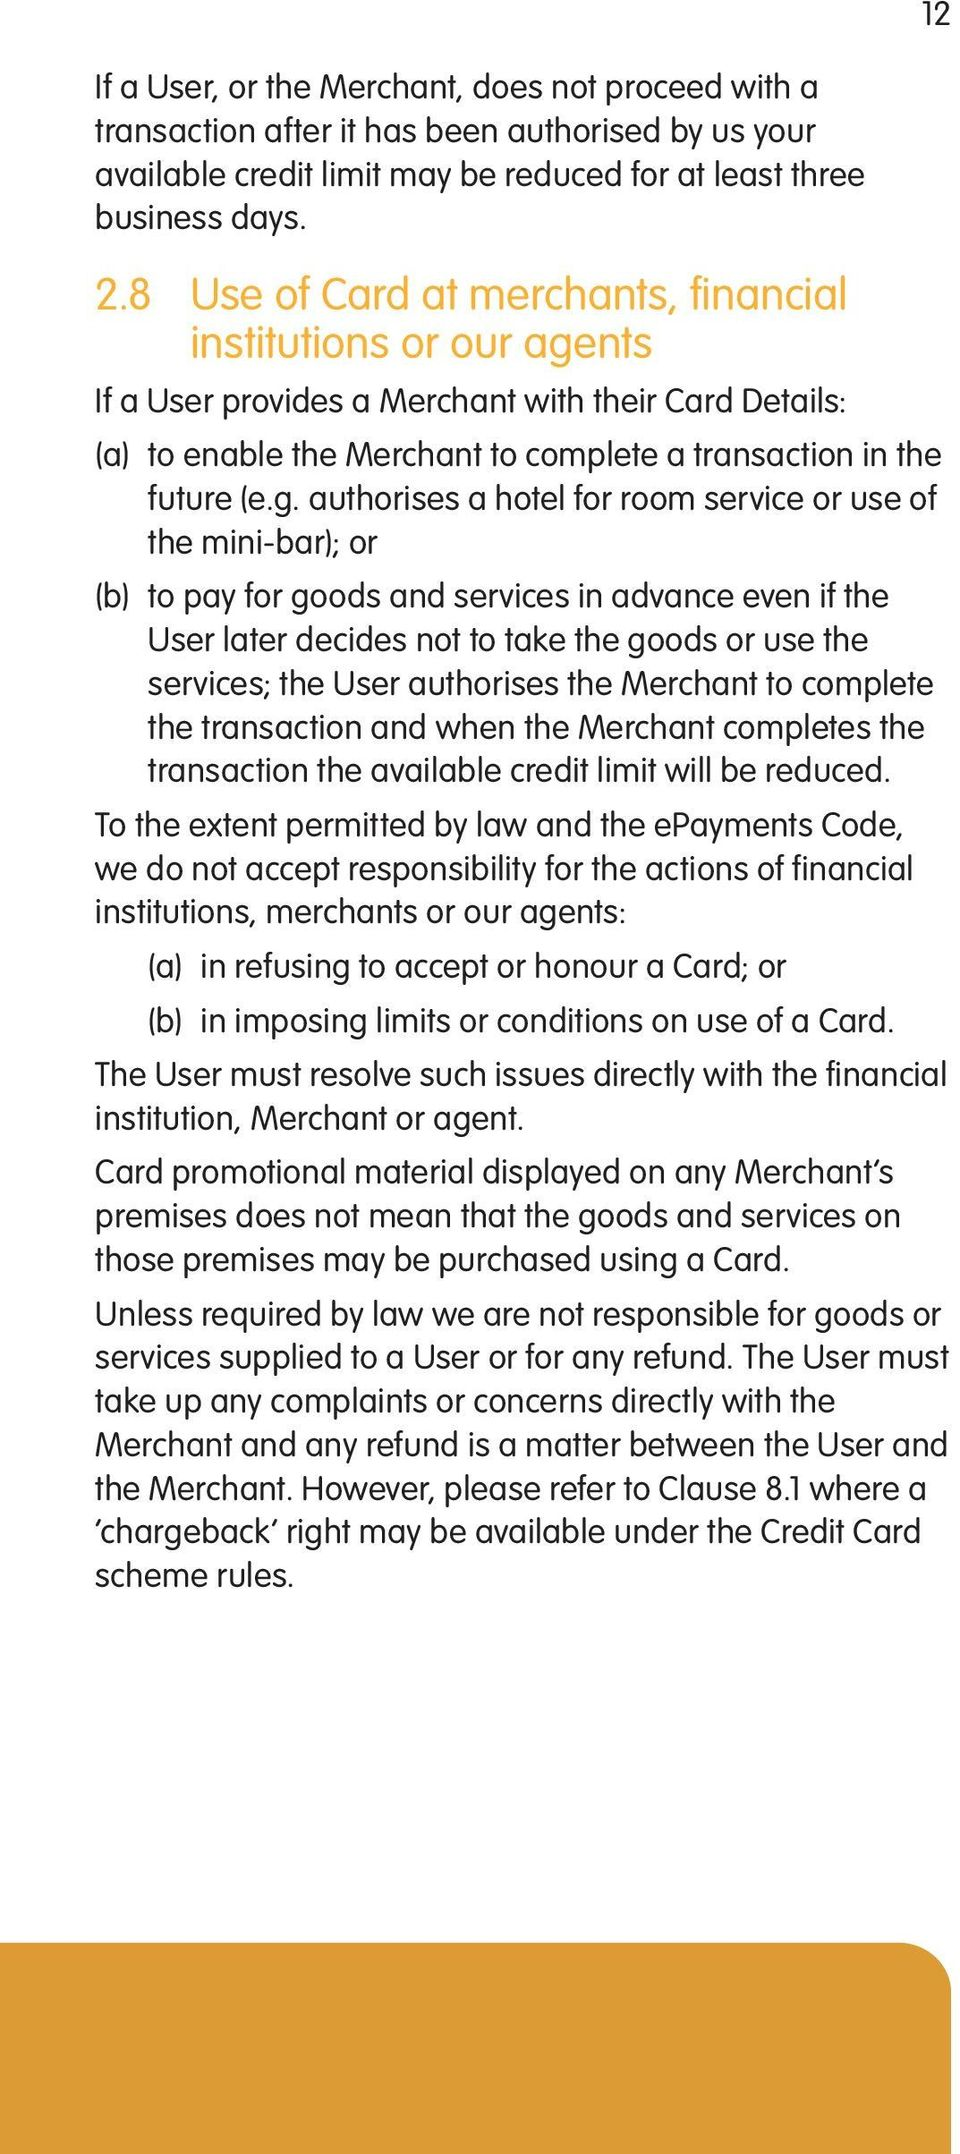 nts If a User provides a Merchant with their Card Details: (a) to enable the Merchant to complete a transaction in the future (e.g.